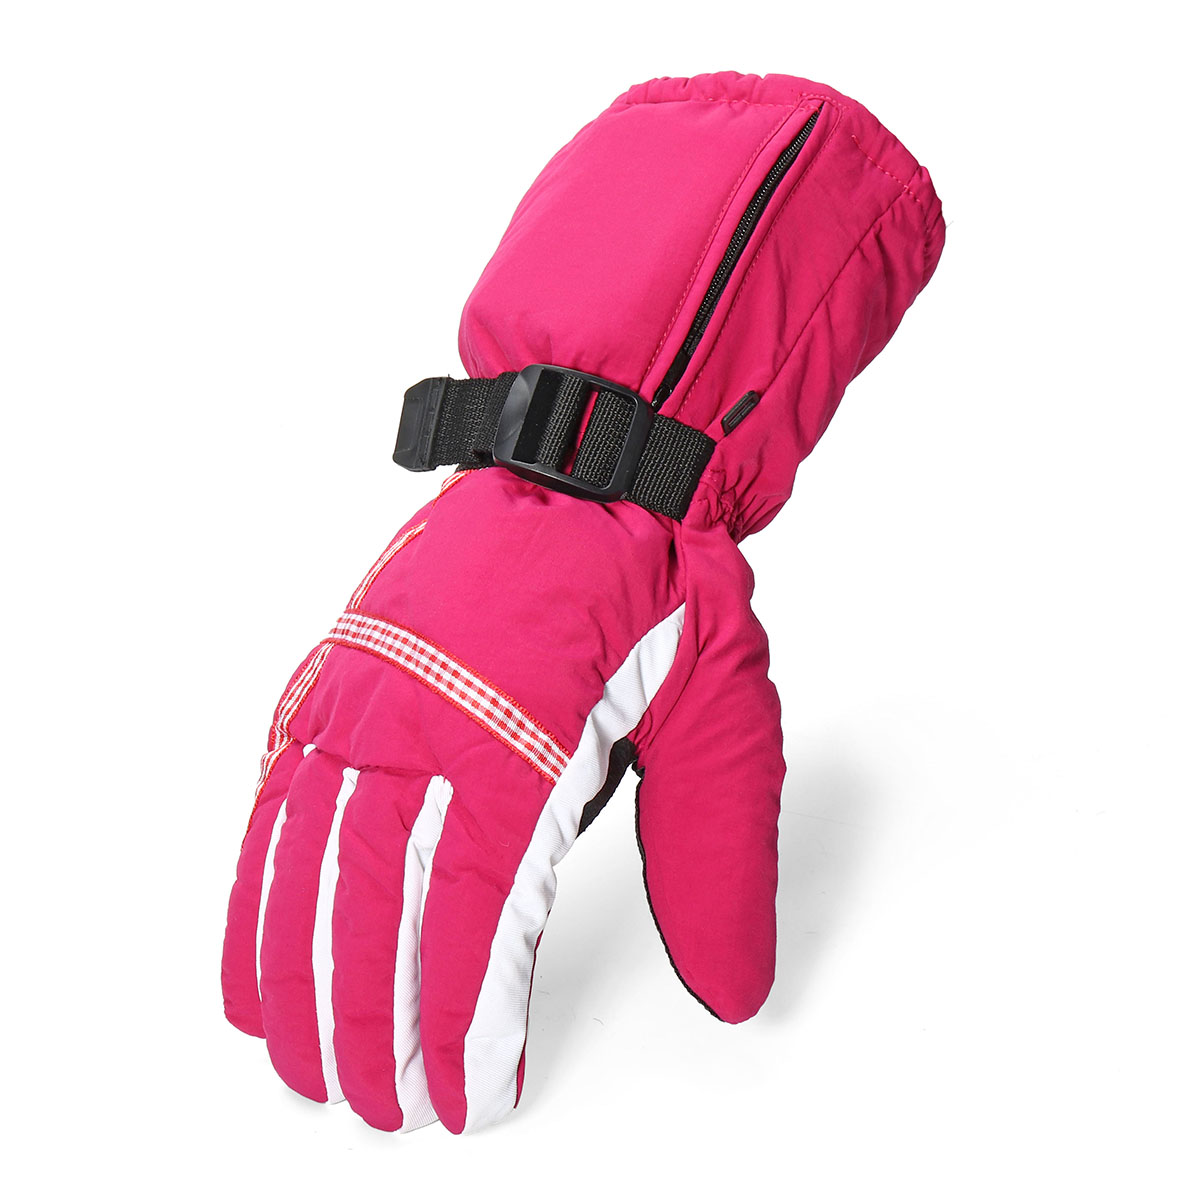 Electronic Heated Motorcycle Gloves Women Warm Hand USB Rechargeable 4.5W Battery 3000 mAh